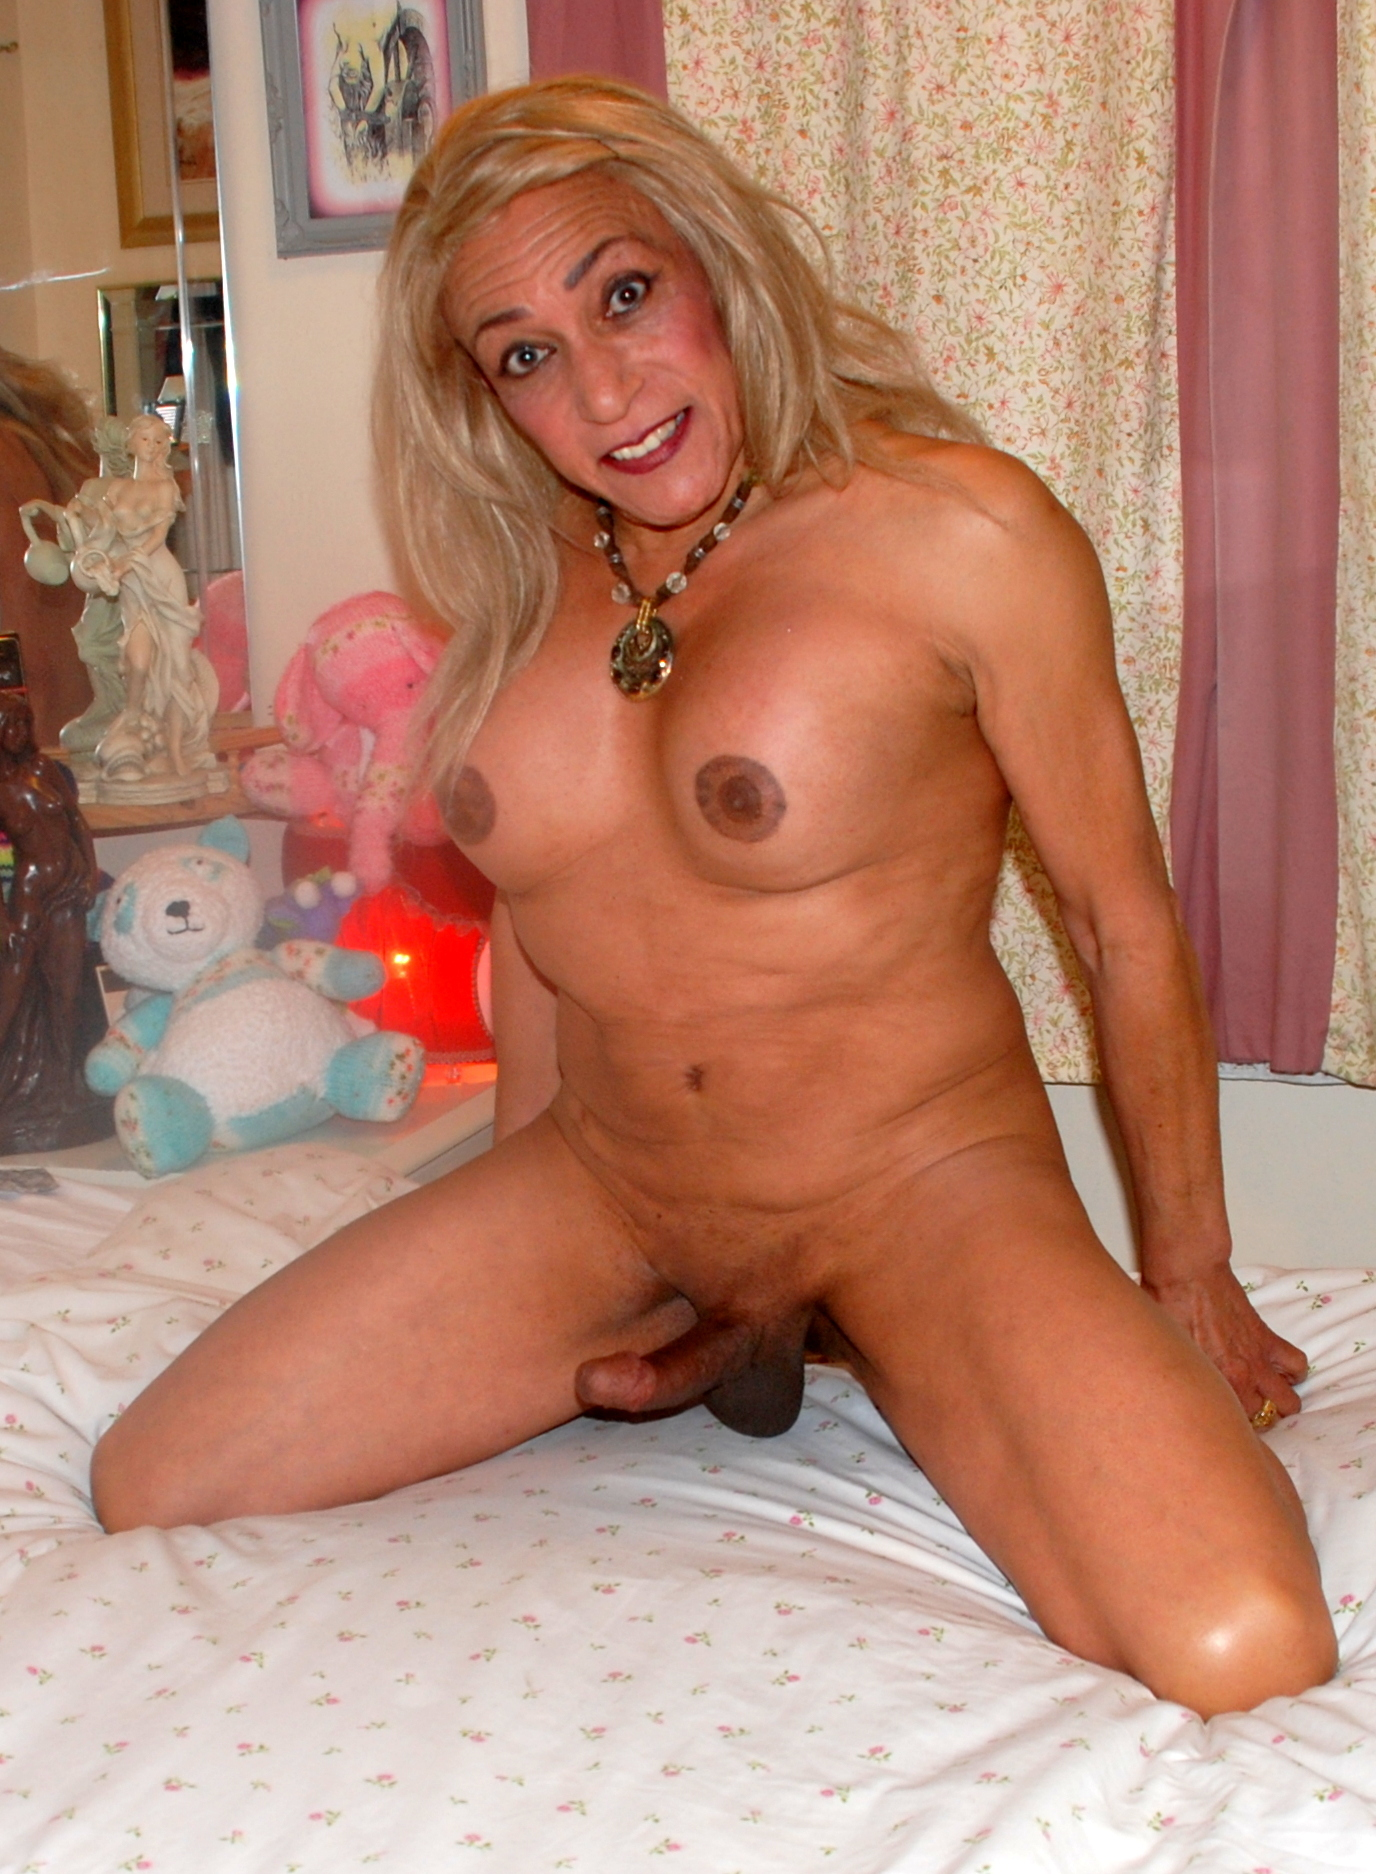 Fake celebrity nude tranny